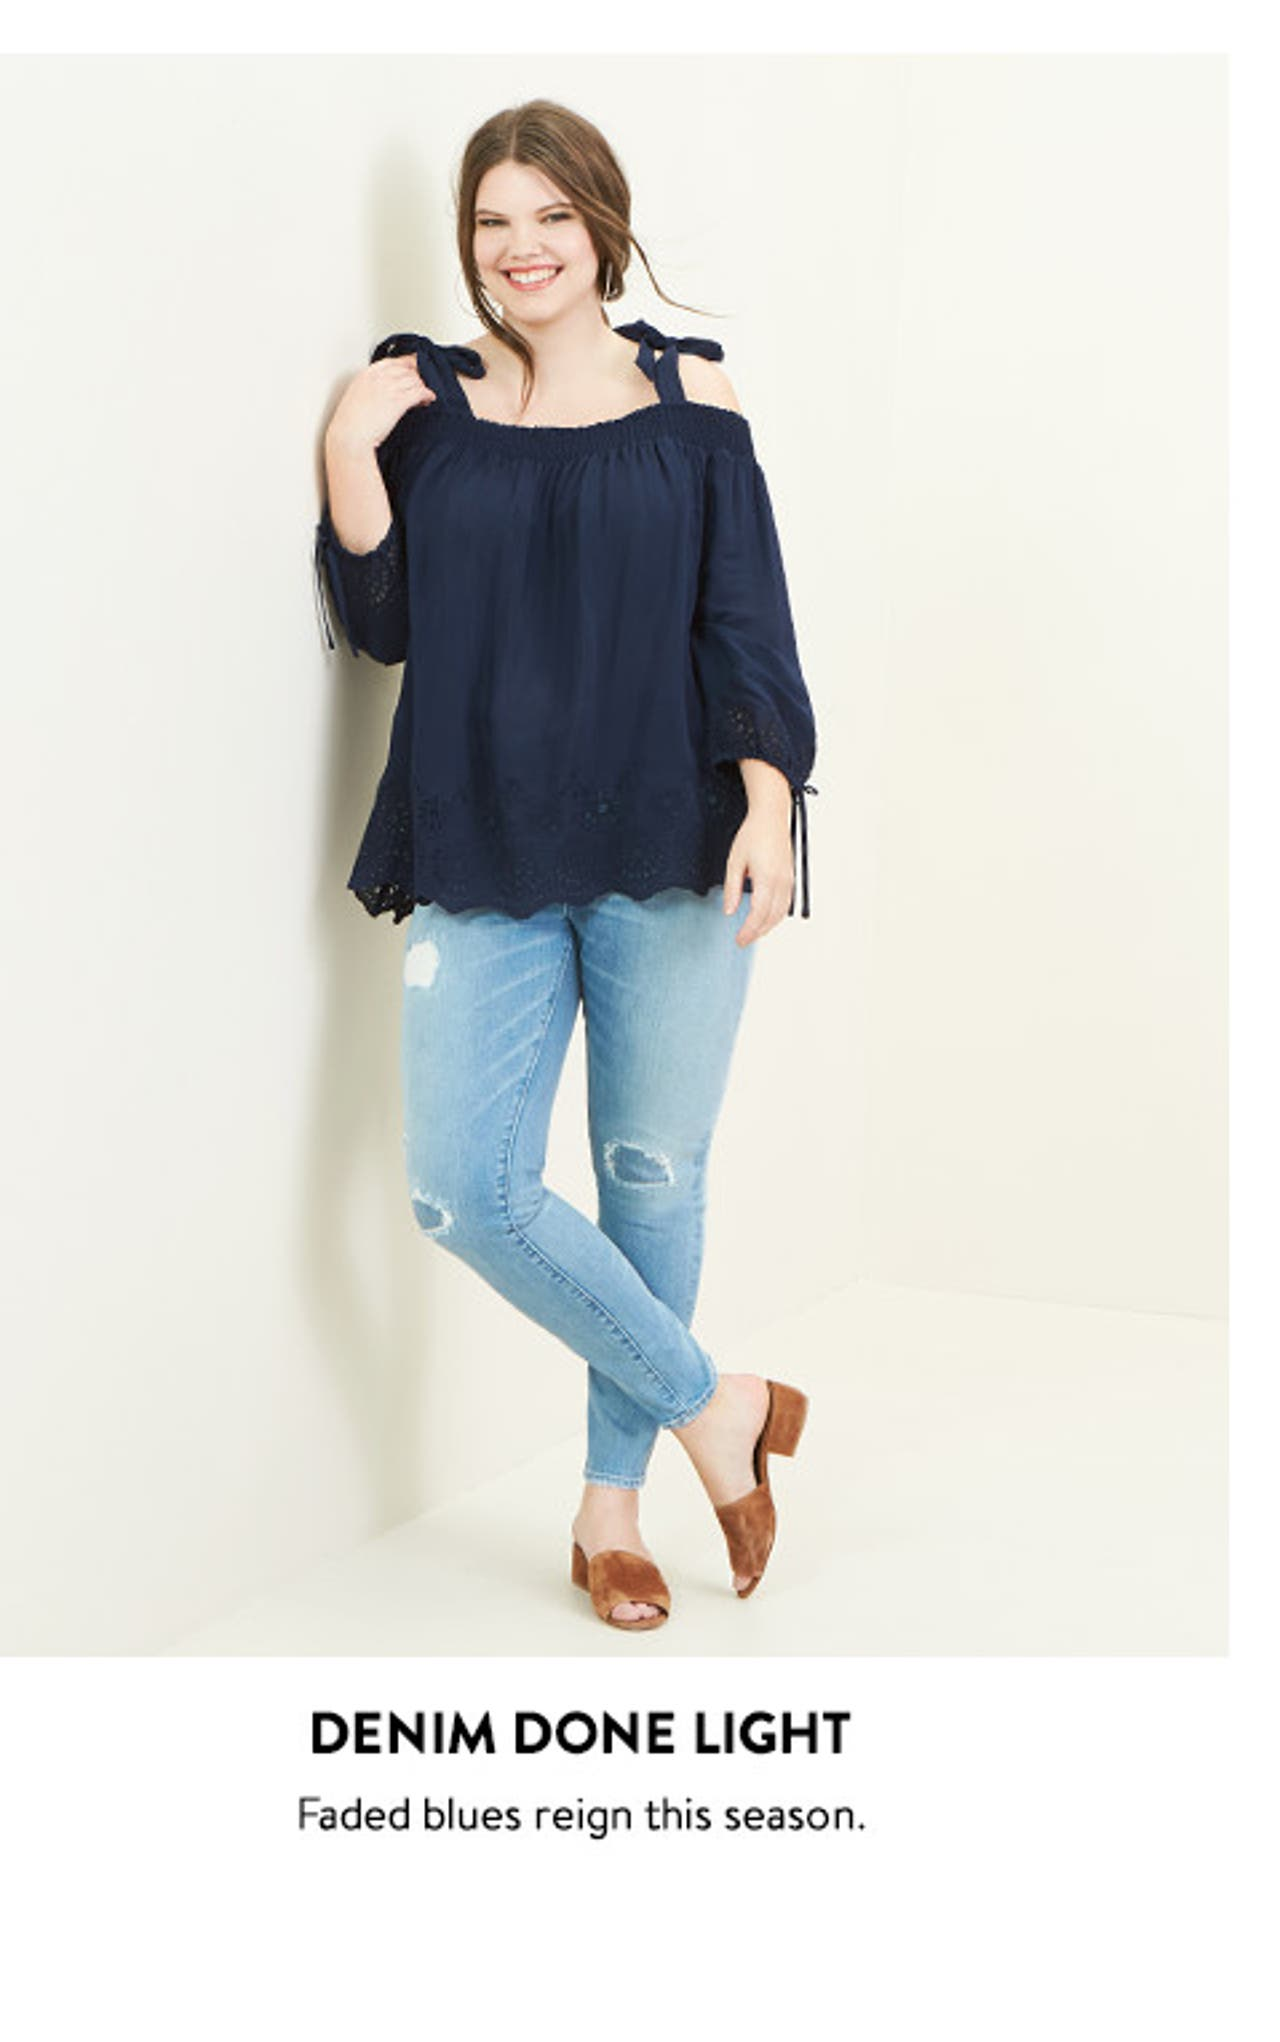 Plus-size denim done light.